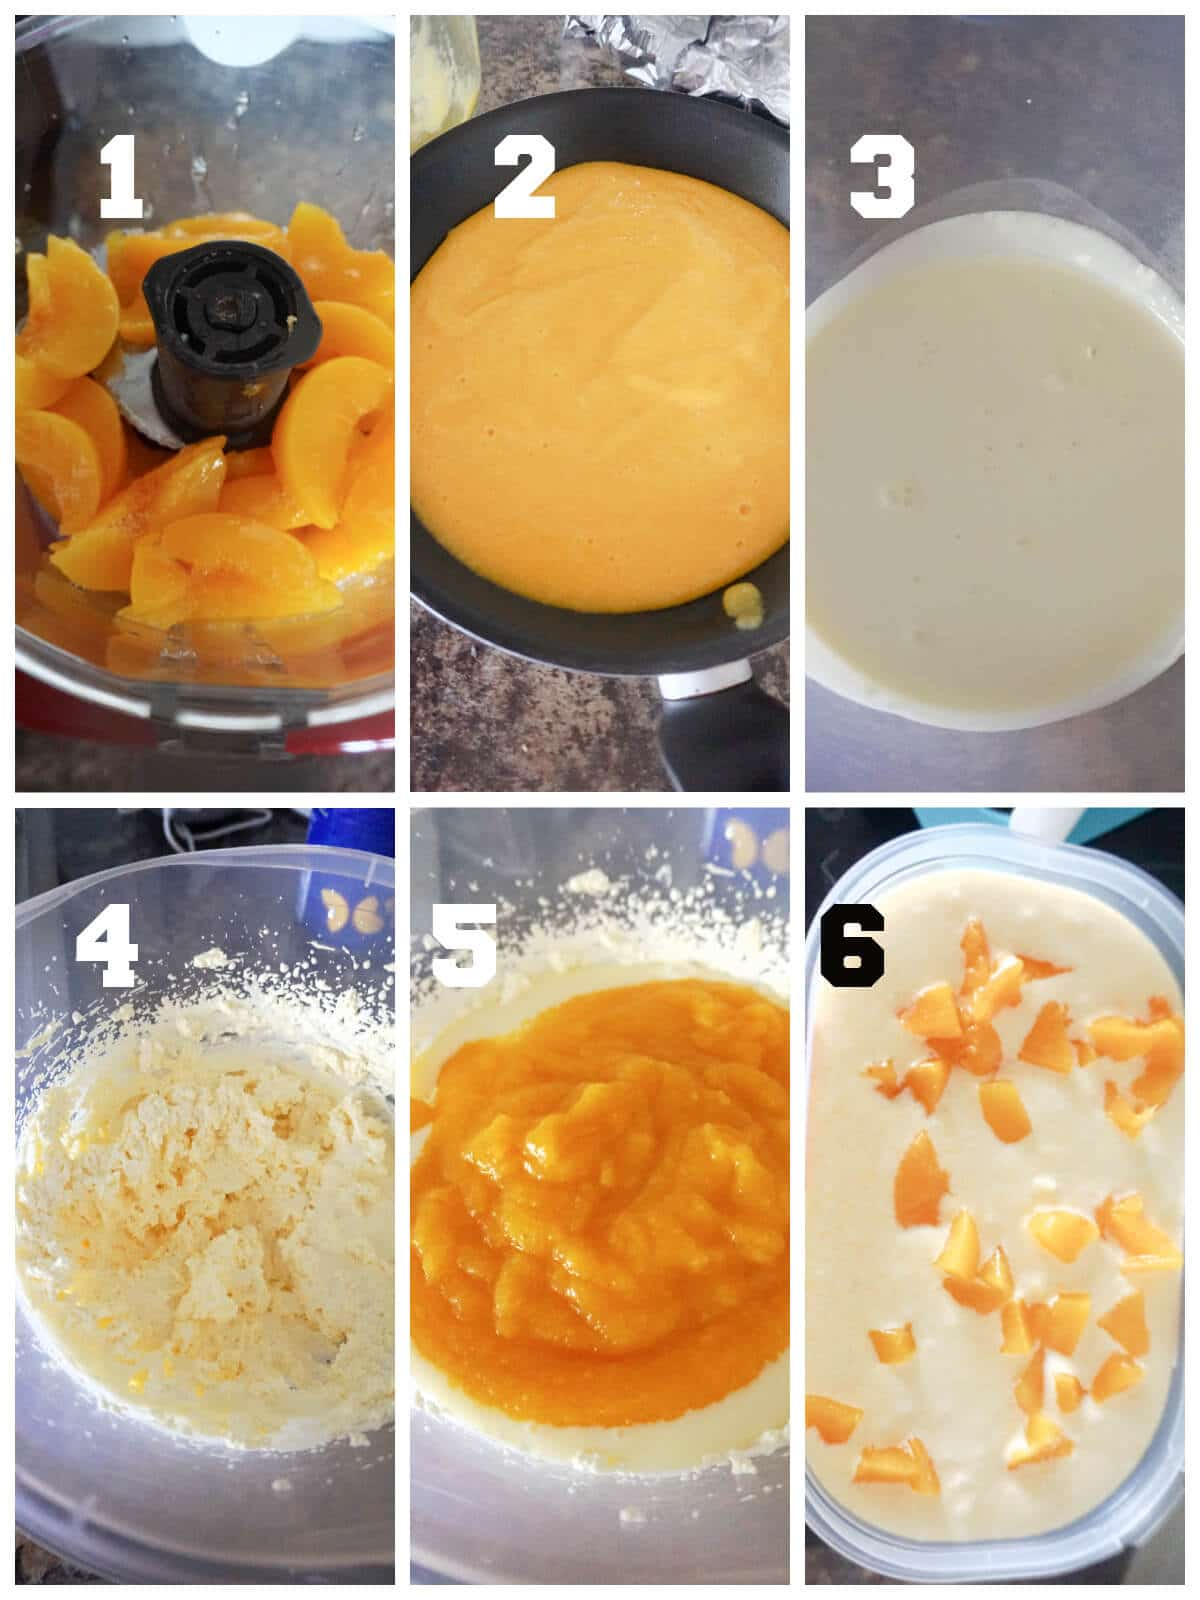 Collage of 6 photos to show how to make peach ice cream at home